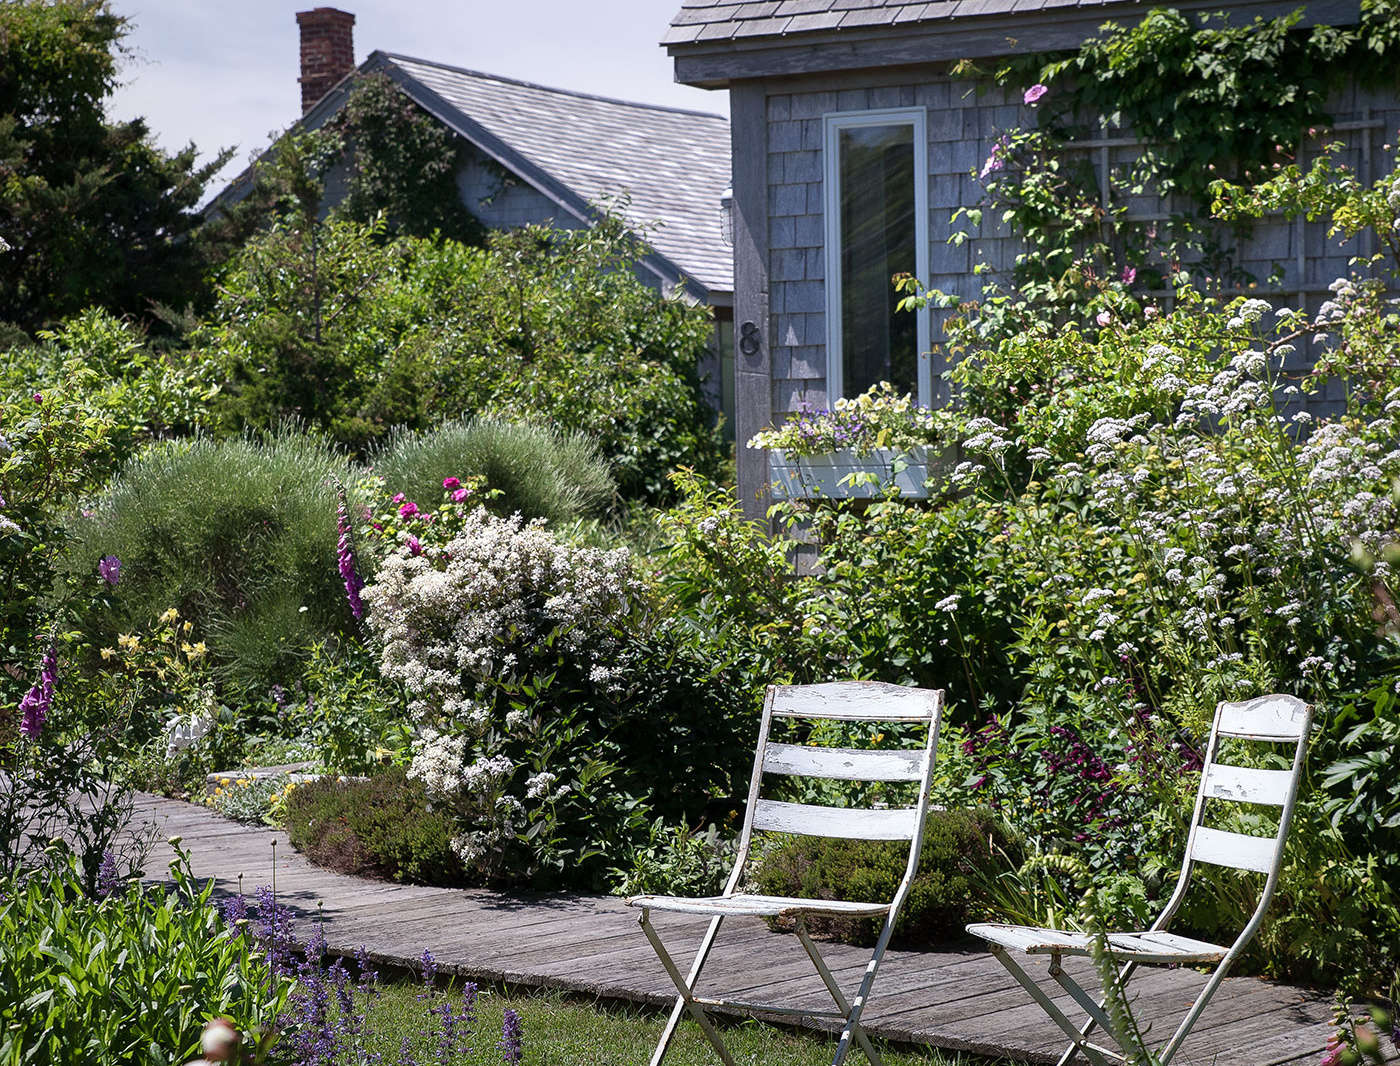 Landscaping Ideas: A Classic Cottage Garden on Cape Cod ... on Bungalow Backyard Ideas id=21065